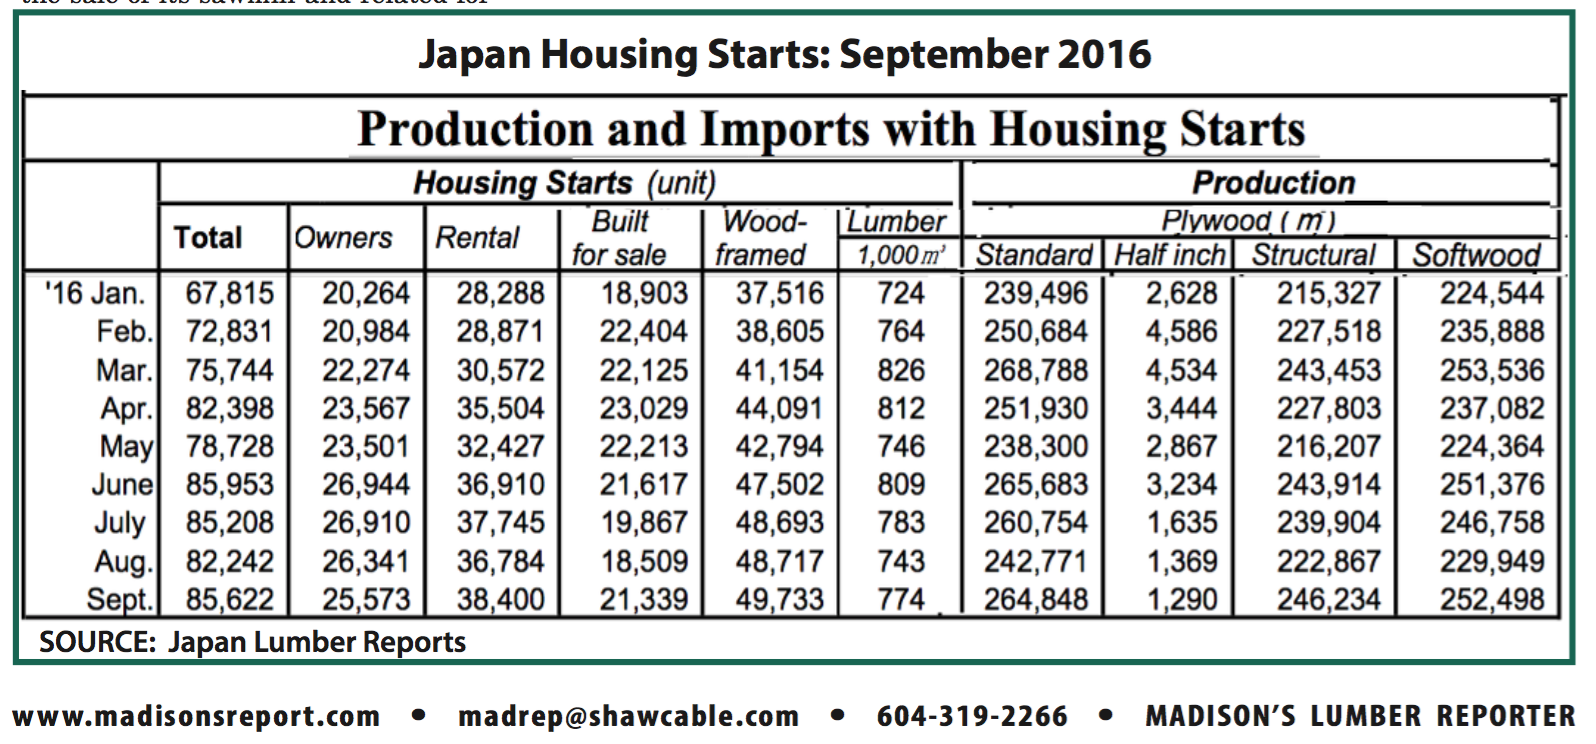 SOURCE: Japan Lumber Reports